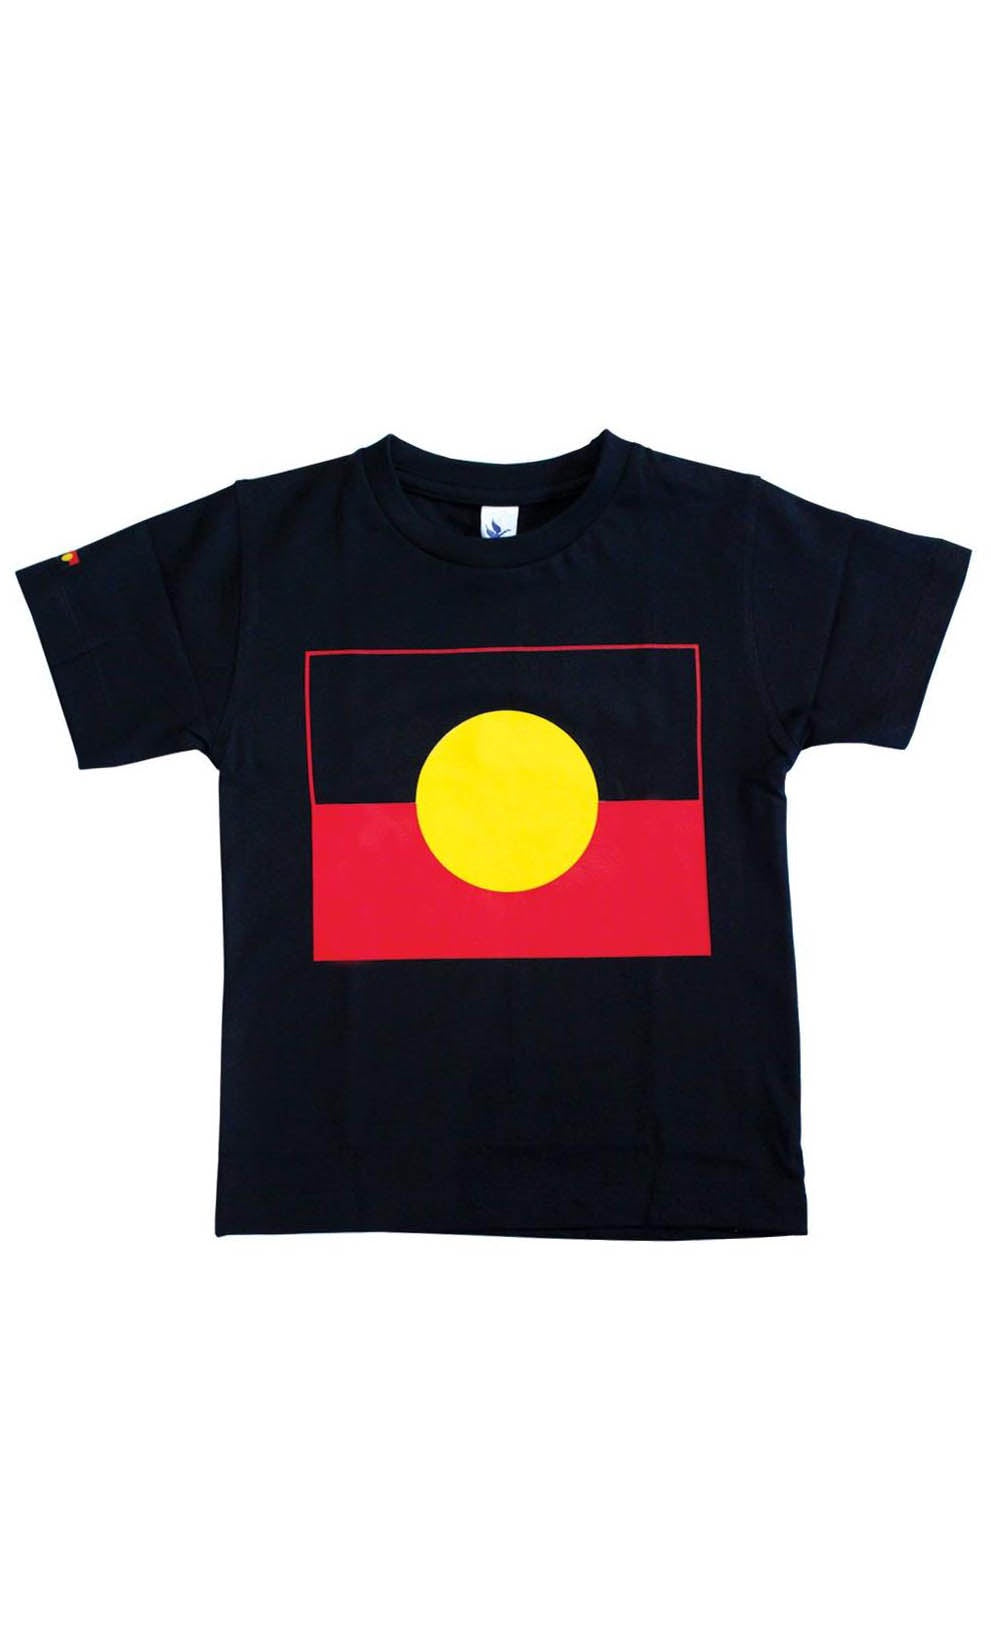 Aboriginal Flag Children's T-Shirt